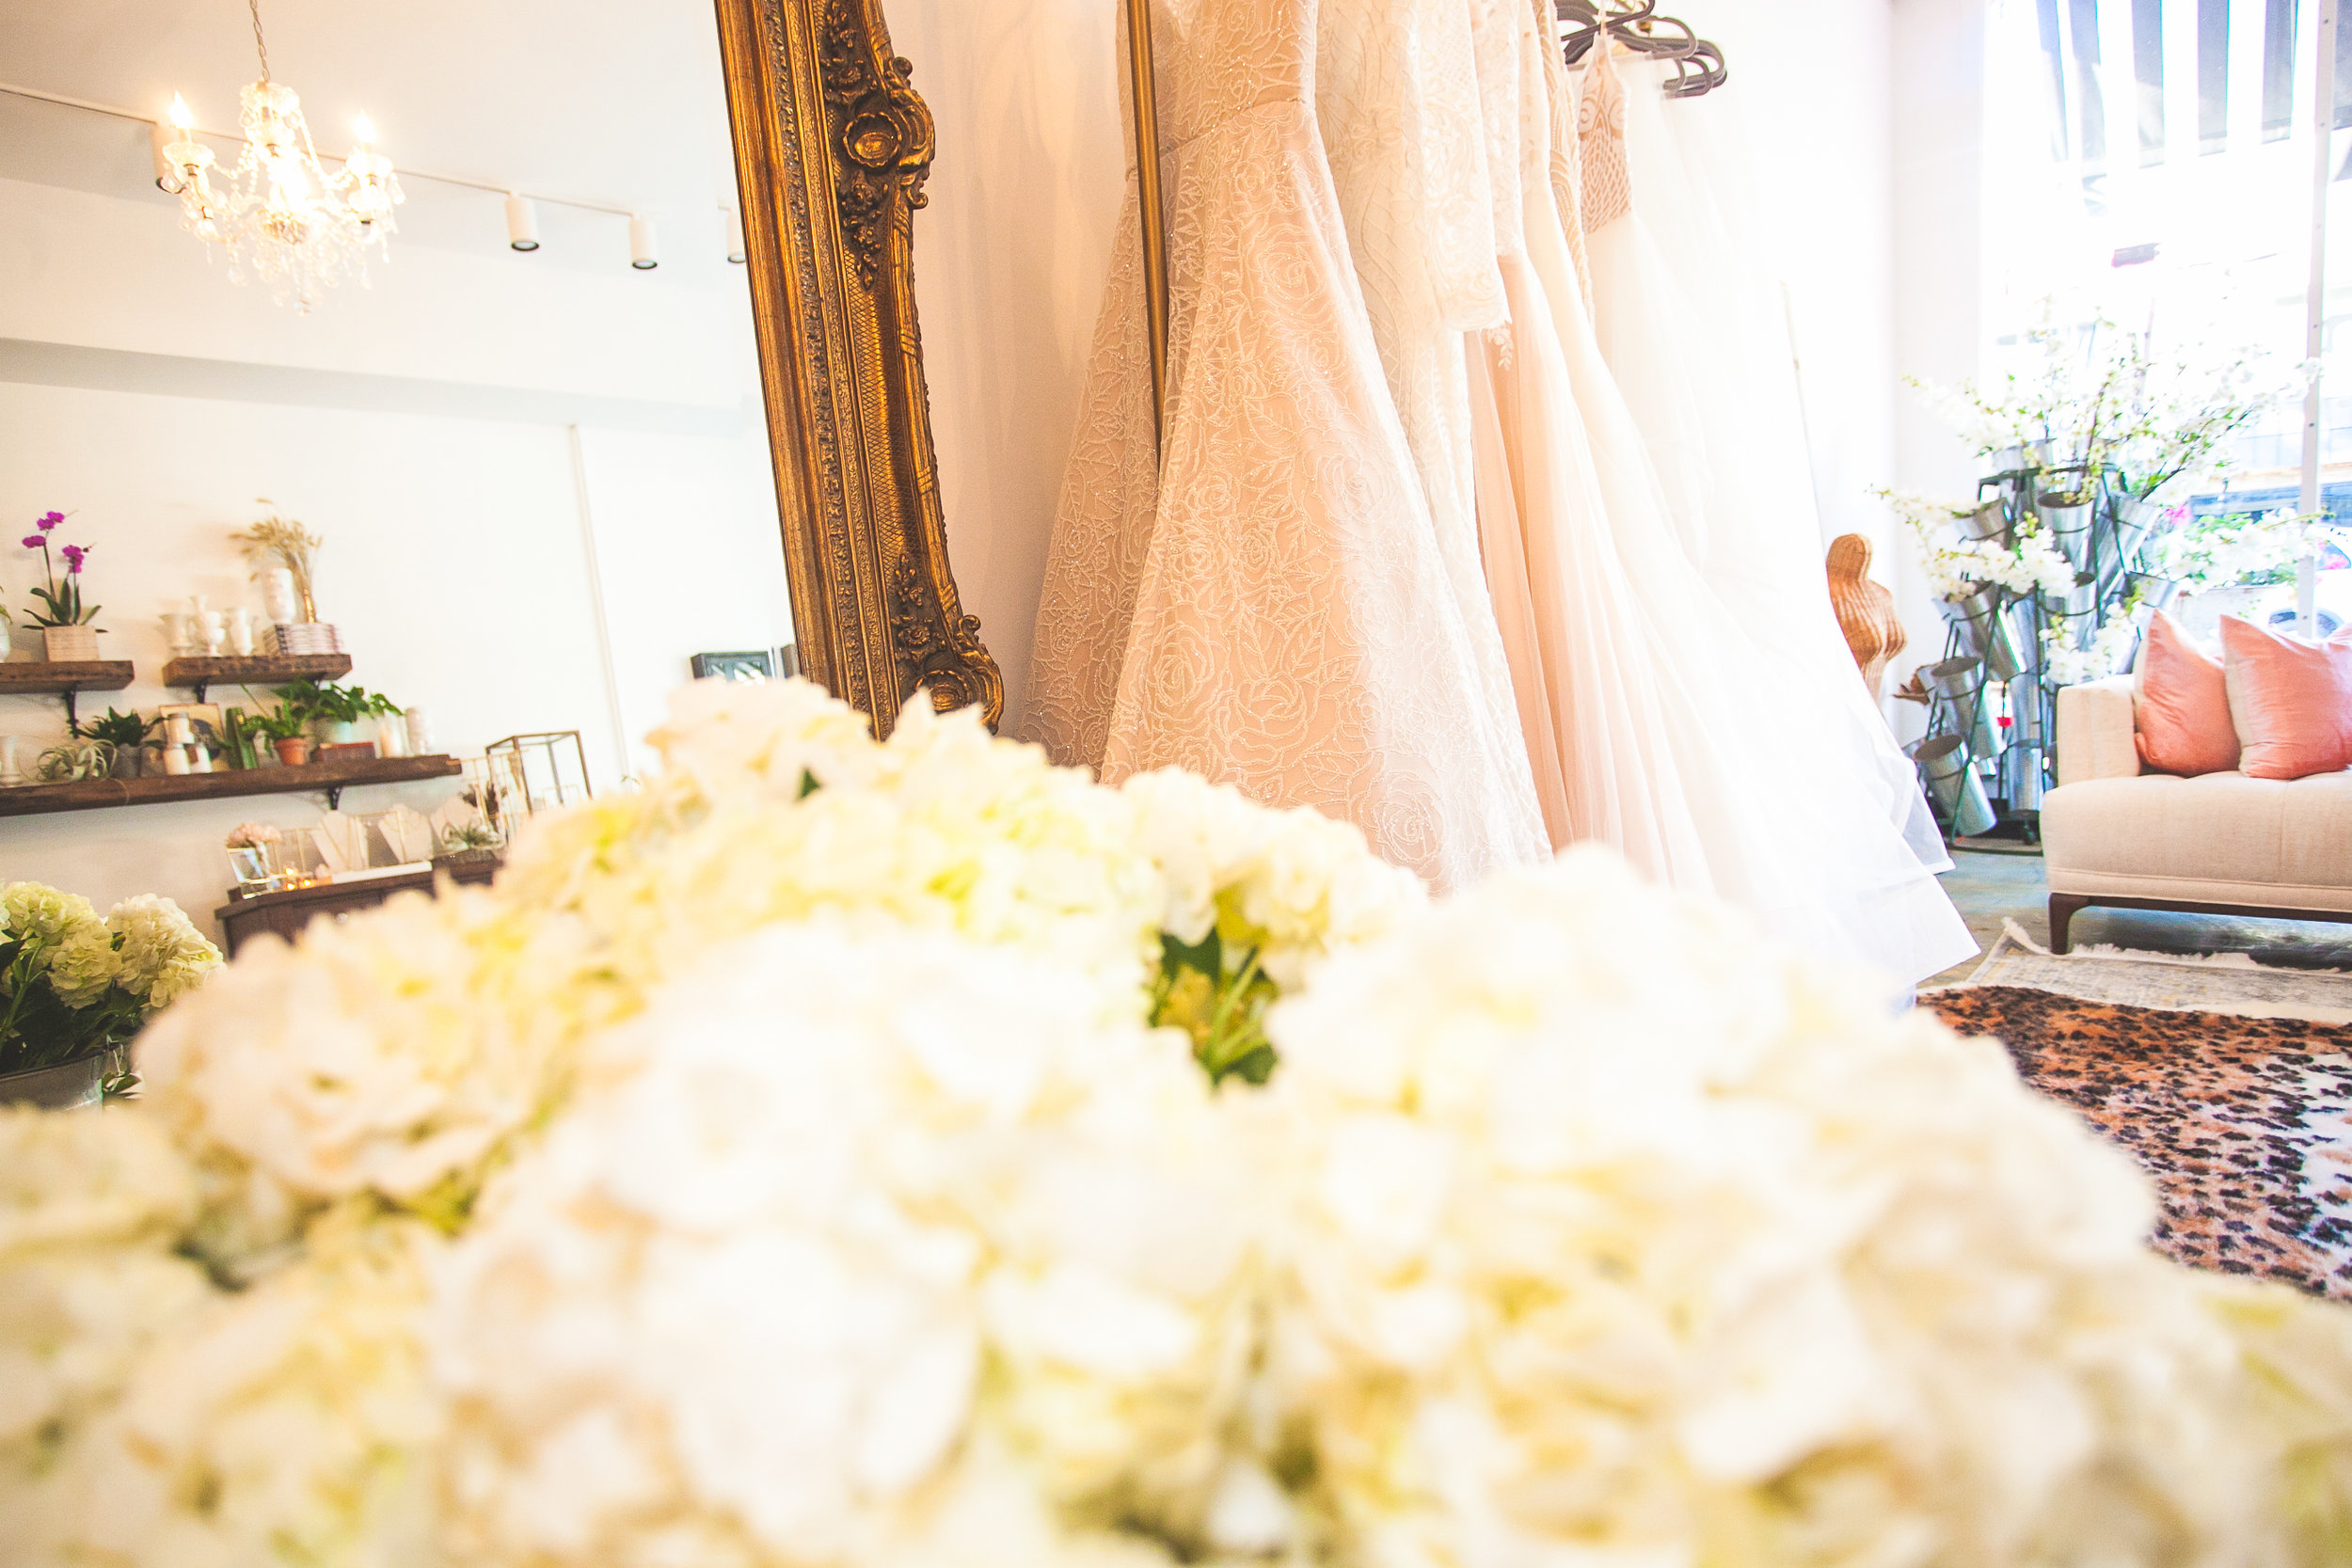 Inside of FBM Bridal 726 Arnold Ave C Point Pleasant Photography Courtesy The Aisle Photography